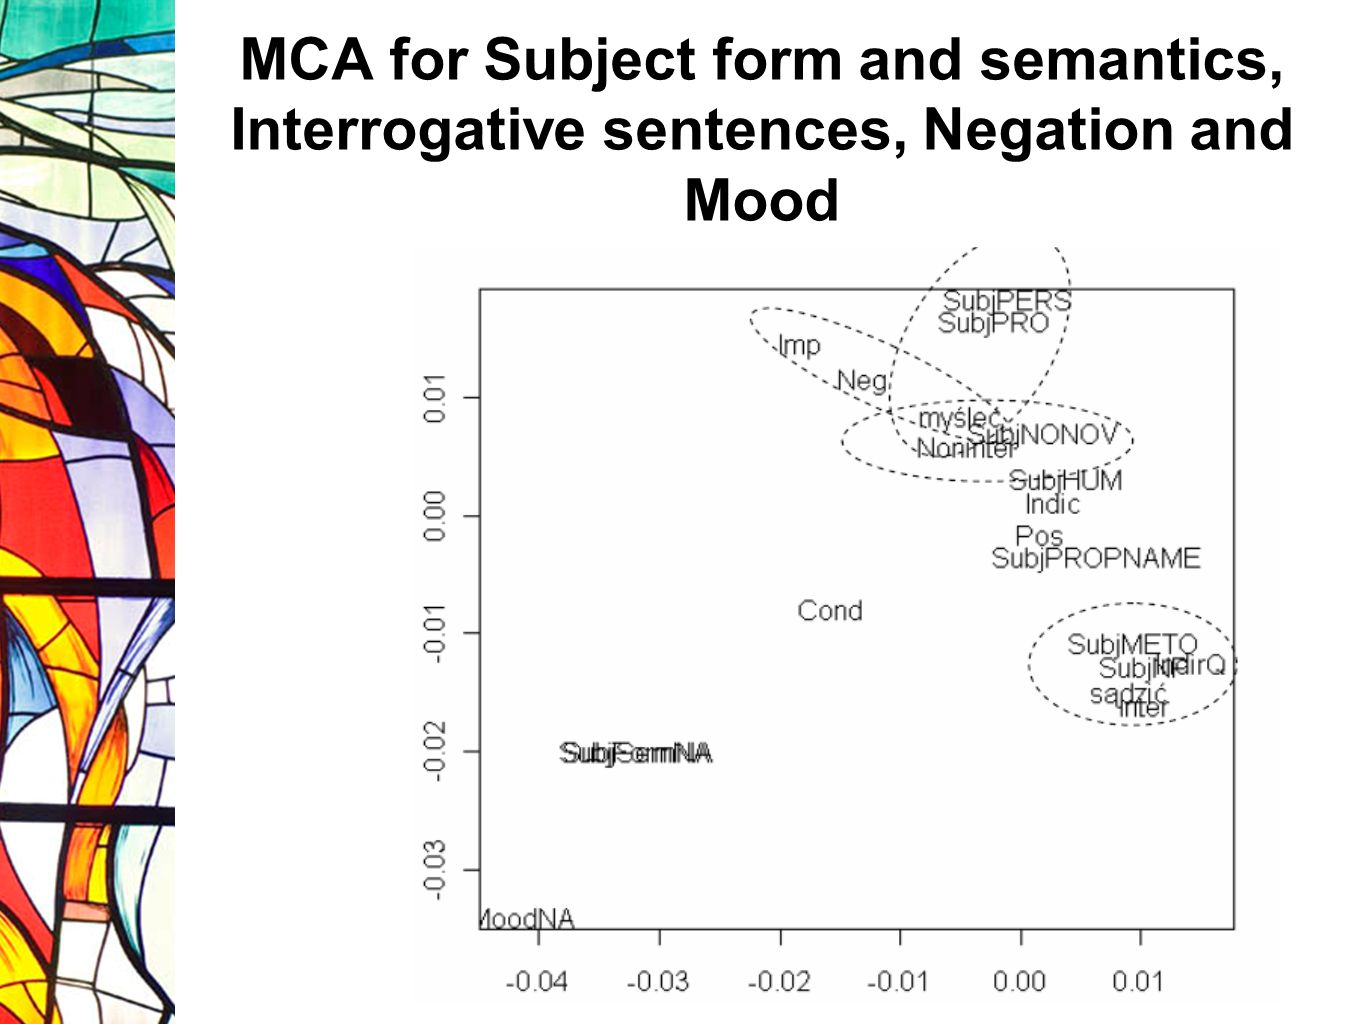 MCA for Subject form and semantics, Interrogative sentences, Negation and Mood